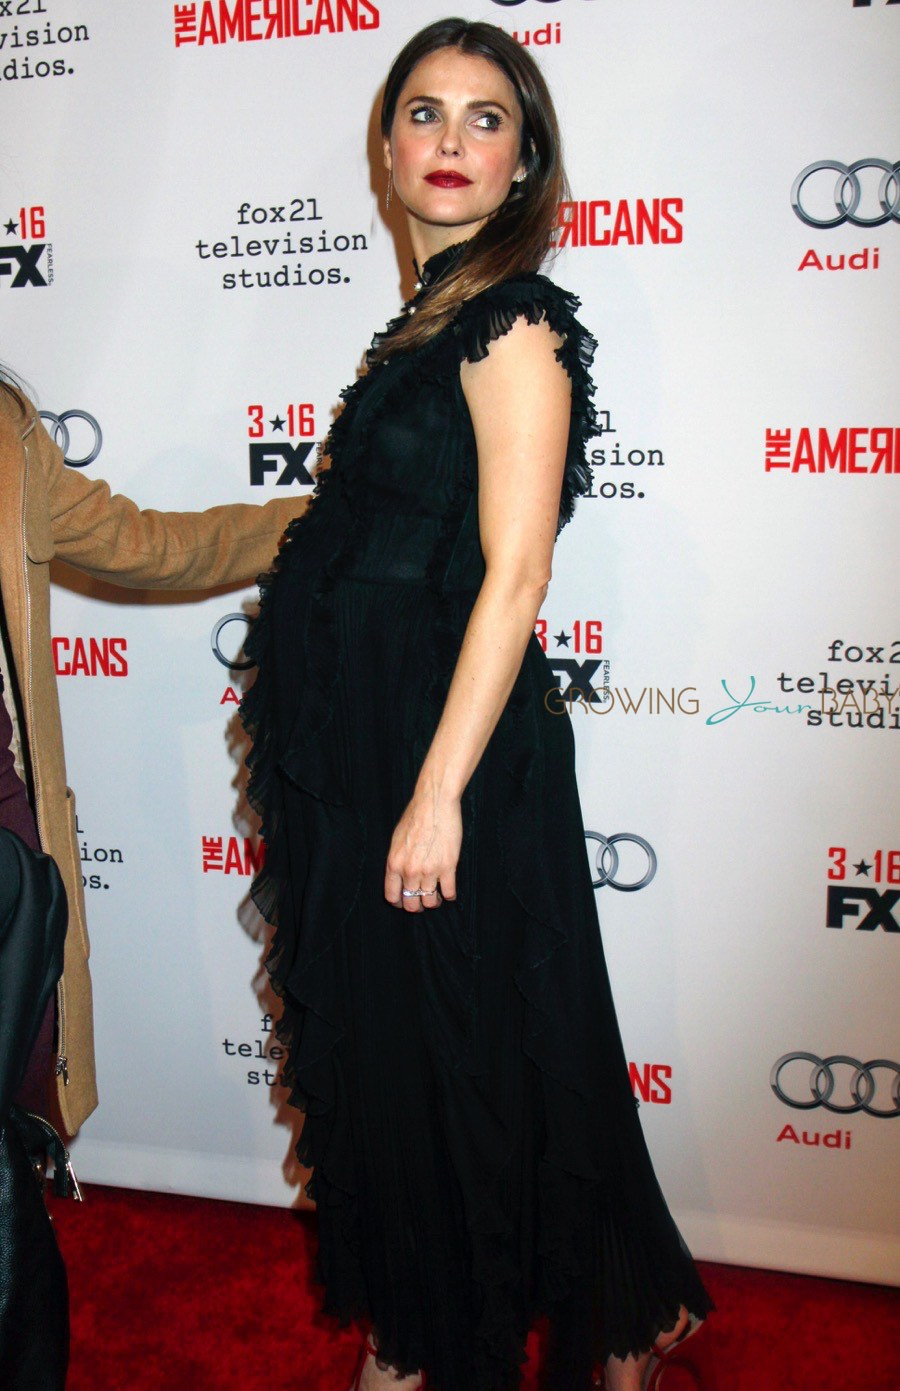 Mom-to-be Keri Russell walks the red carpet for the premiere of 'The Americans